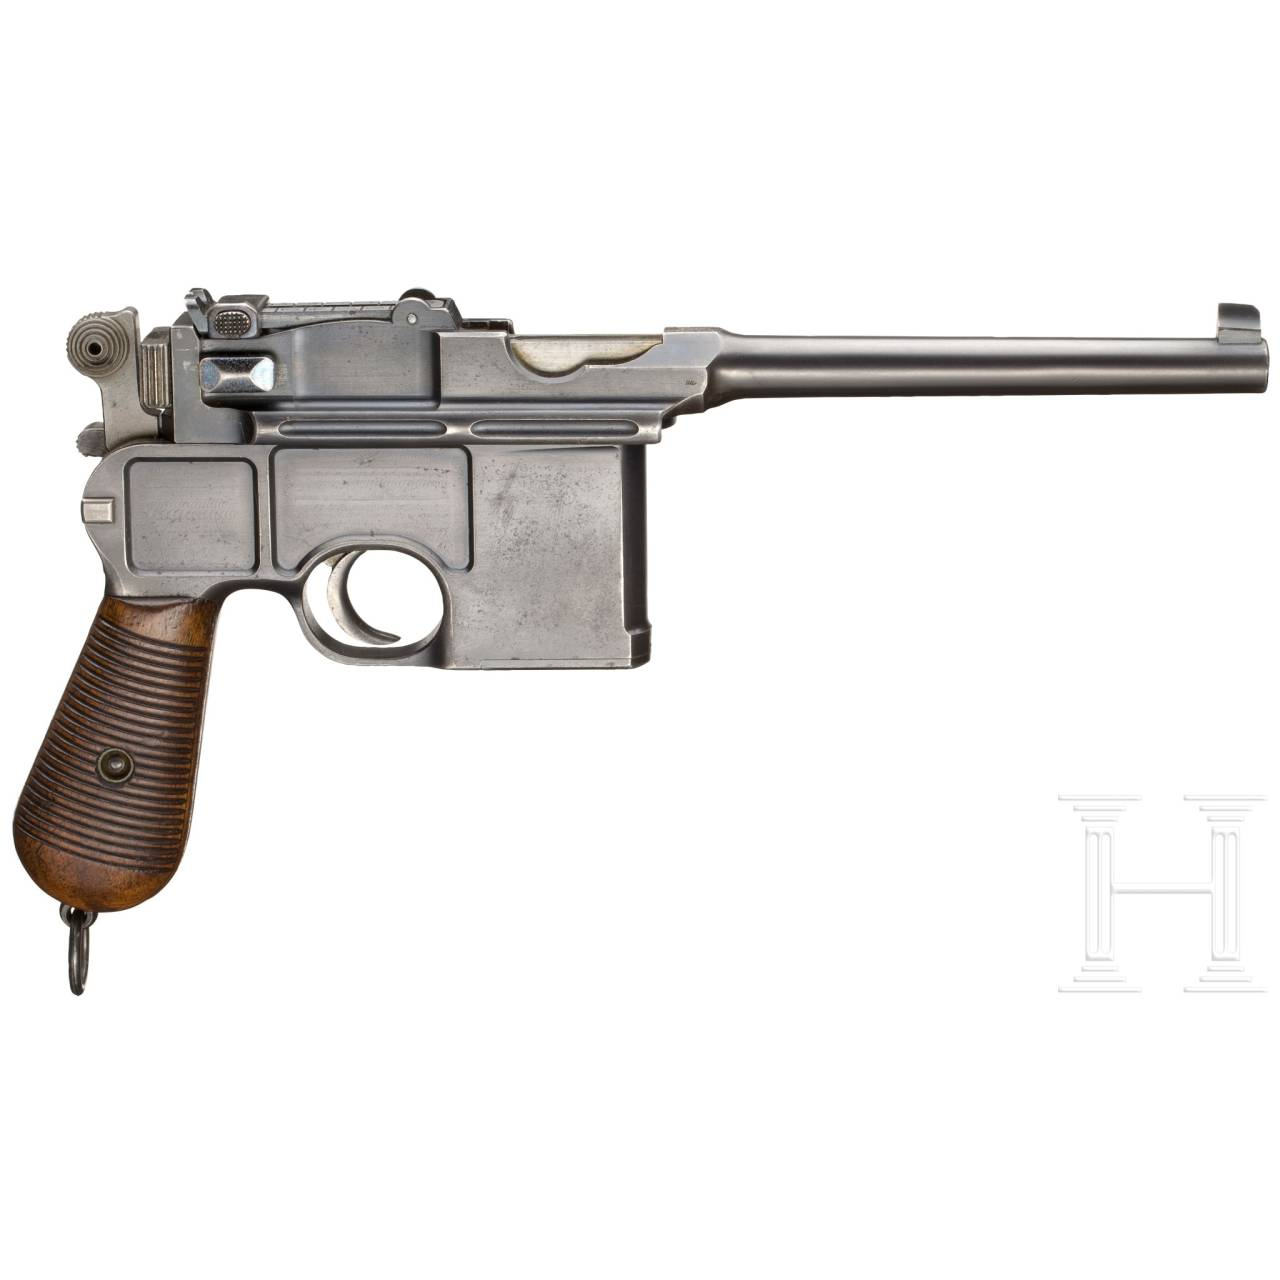 A Mauser C 96 Conehammer, with detachable stock